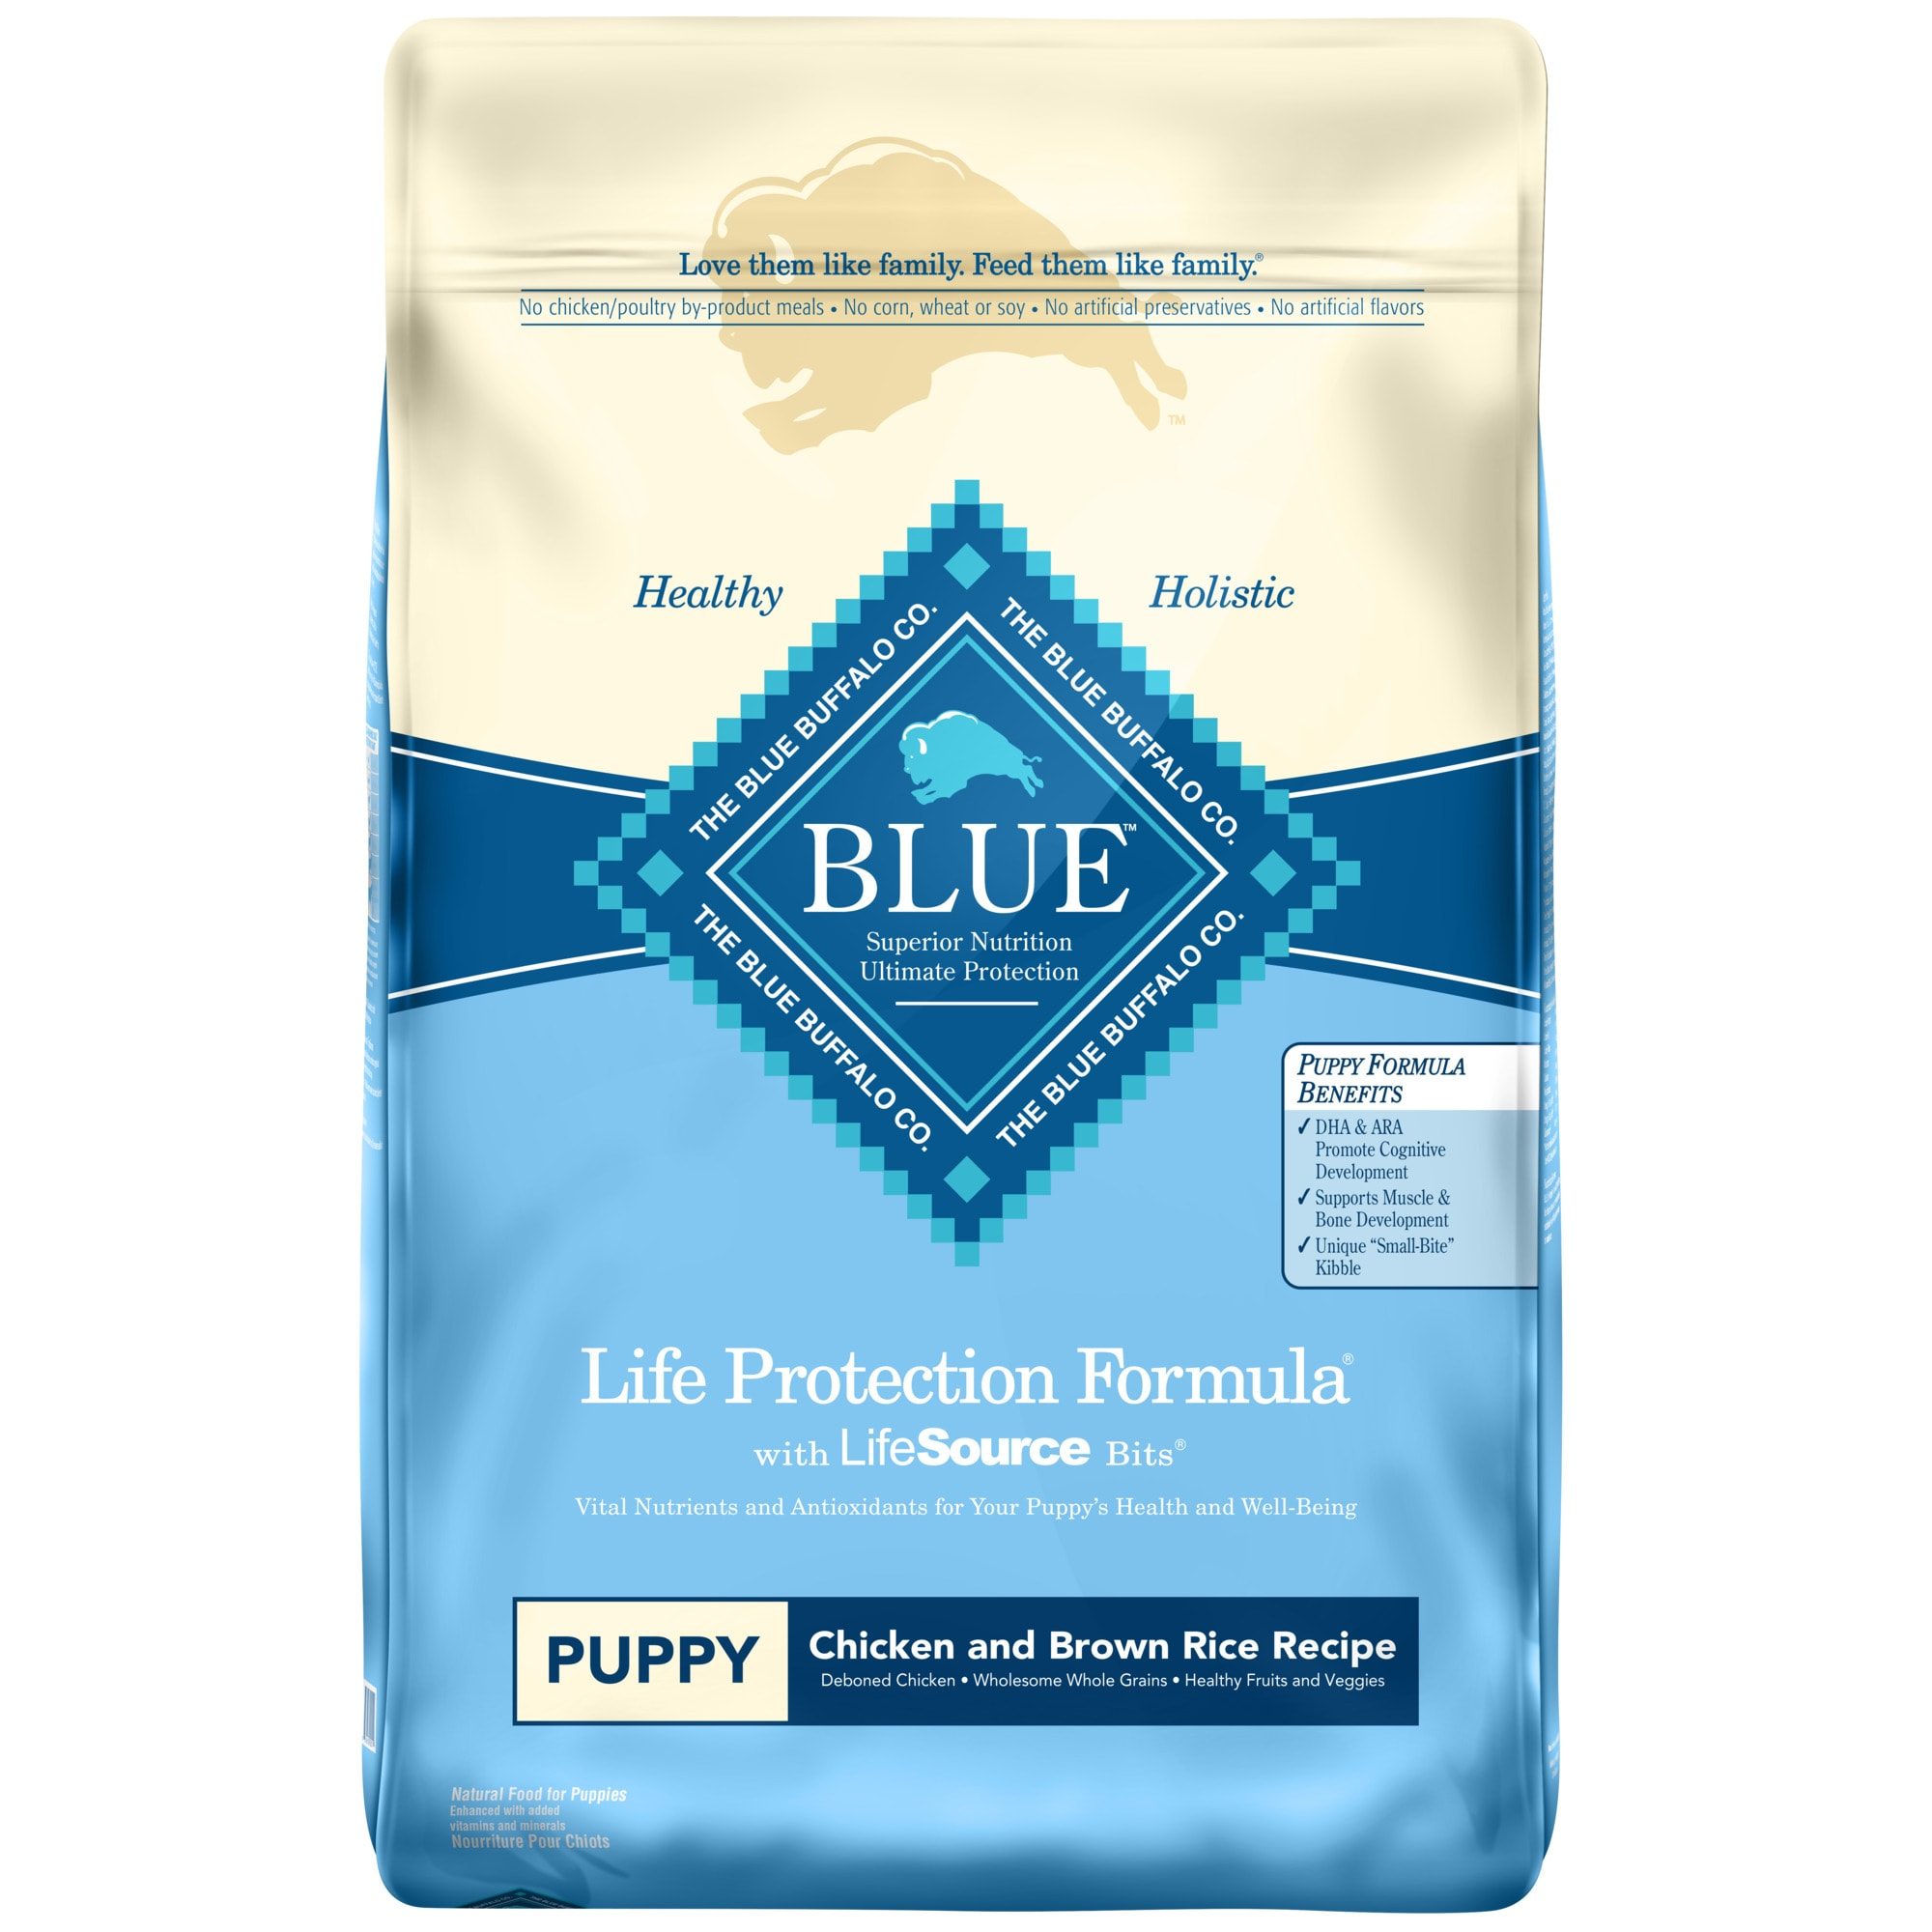 Because puppyhood is such an important stage in any dog\\\'s life, BLUE Life Protection Formula for puppies features ingredients that support the healthy growth and development of puppies. It contains the ingredients you\\\'ll love feeding as much as they\\\'ll love eating. BLUE Life Protection Formula dog food is a product of the Blue Buffalo company. Based in the United States, Blue Buffalo makes premium-quality pet foods featuring real meat, fruit and vegetables.